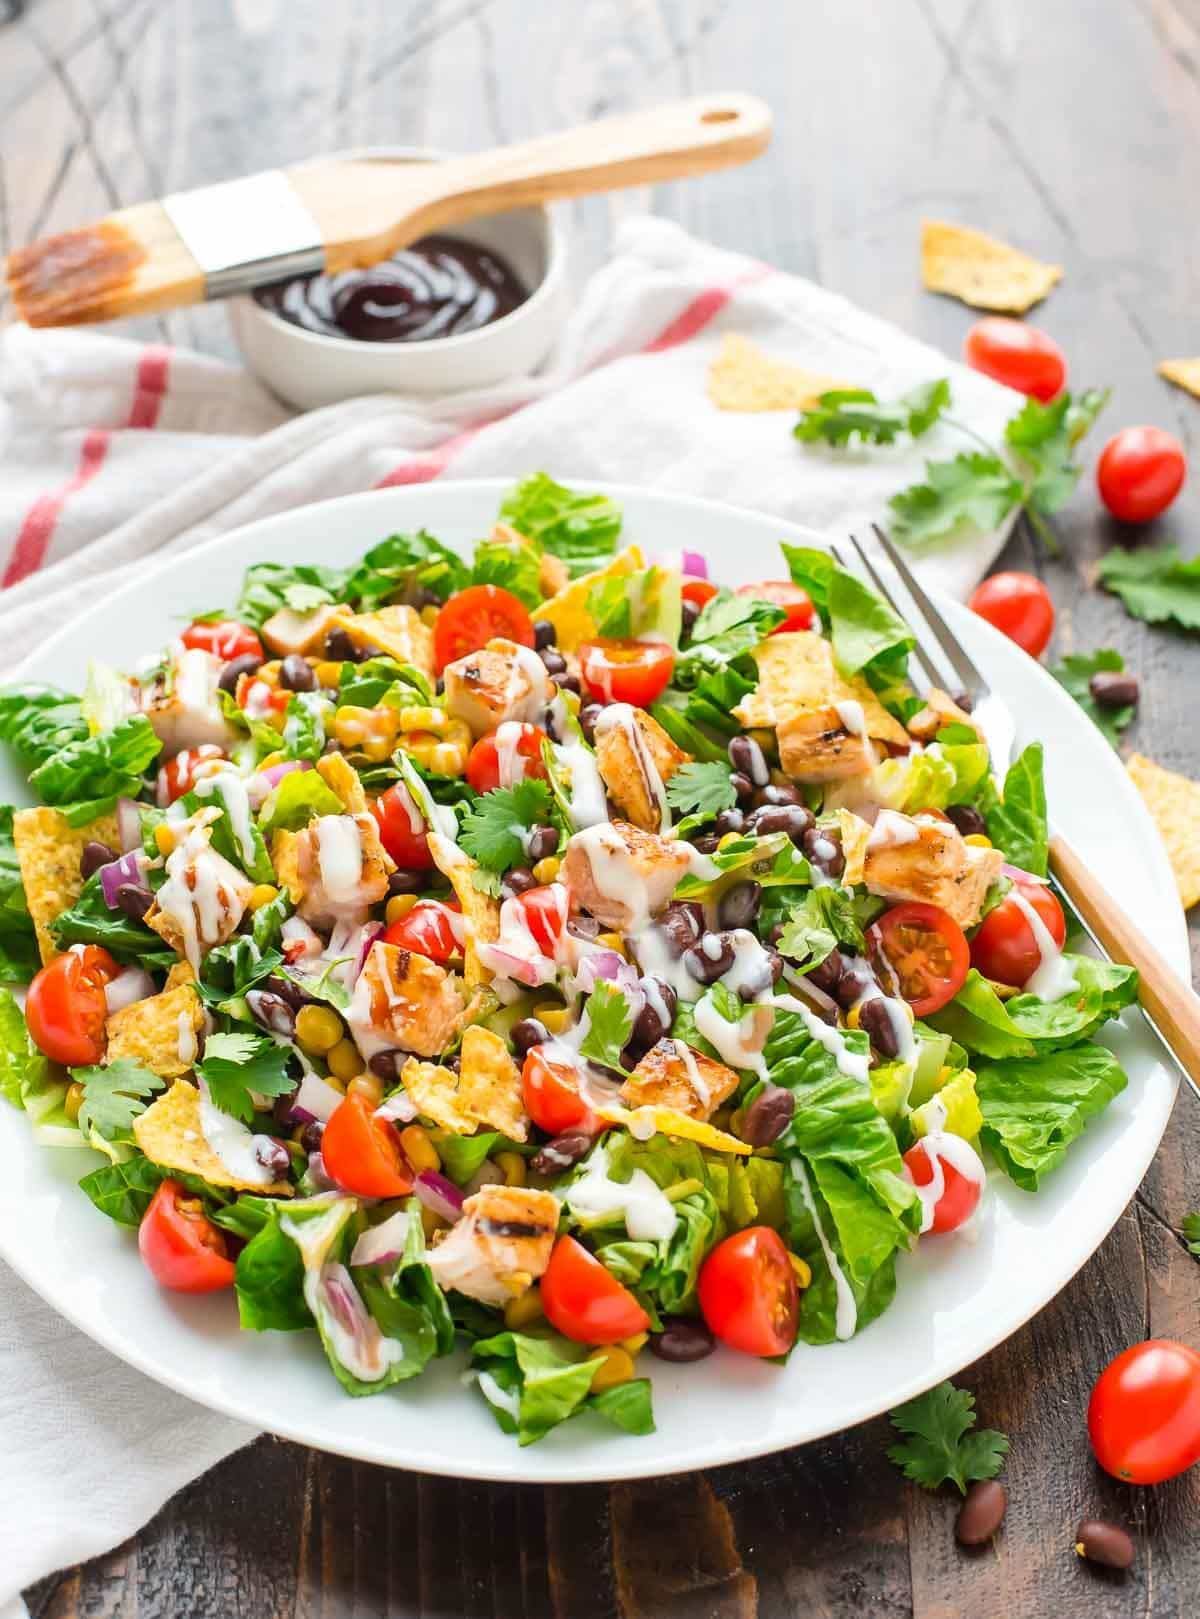 This BBQ Chicken Salad recipe is so fresh, filling, and healthy too! With light ranch, juicy grilled chicken, crunchy tortilla chips, and black beans. Our whole family loves it! @wellplated